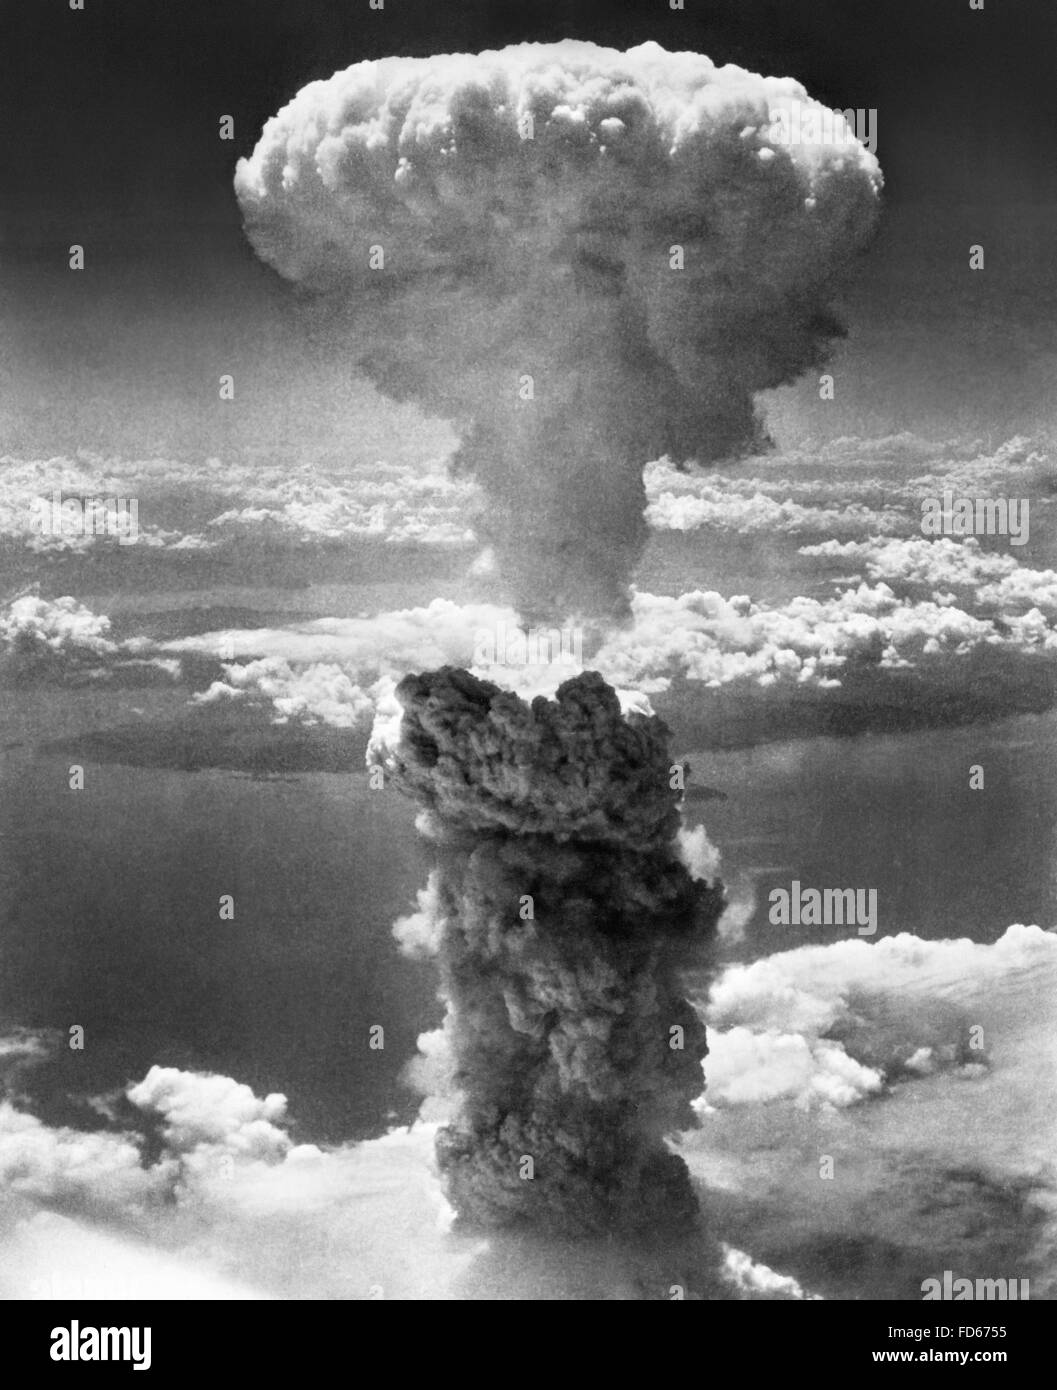 Atomic Bomb. The mushroom cloud from the second atomic bomb, 'Fat Man', dropped on Nagasaki, Japan in WWII. - Stock Image